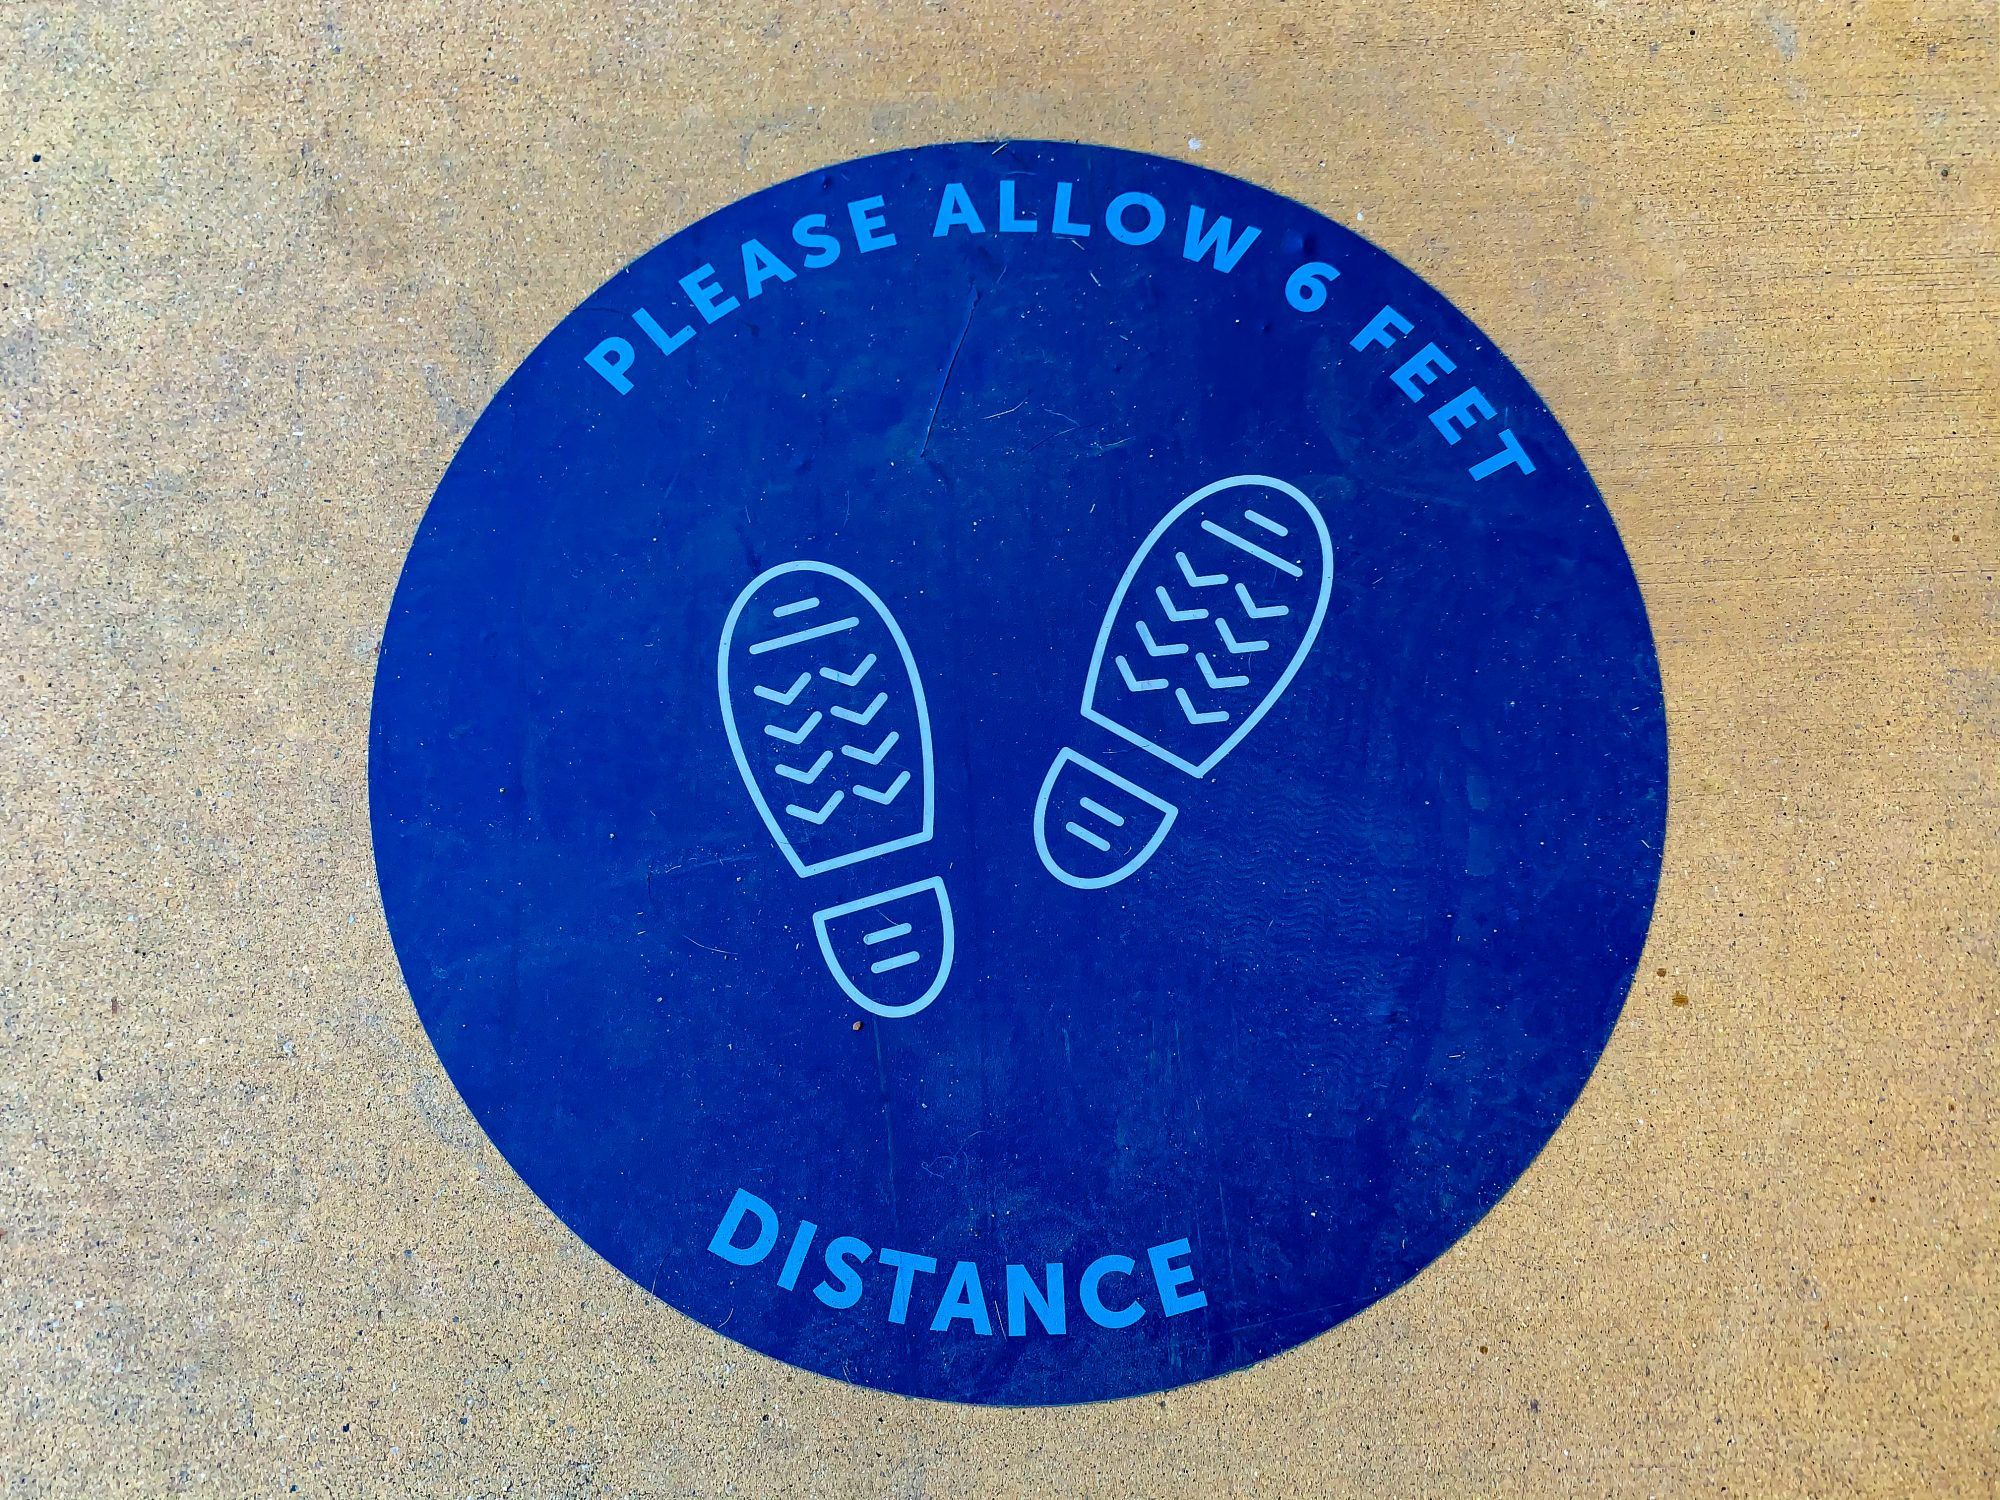 An image of a social distancing sign.